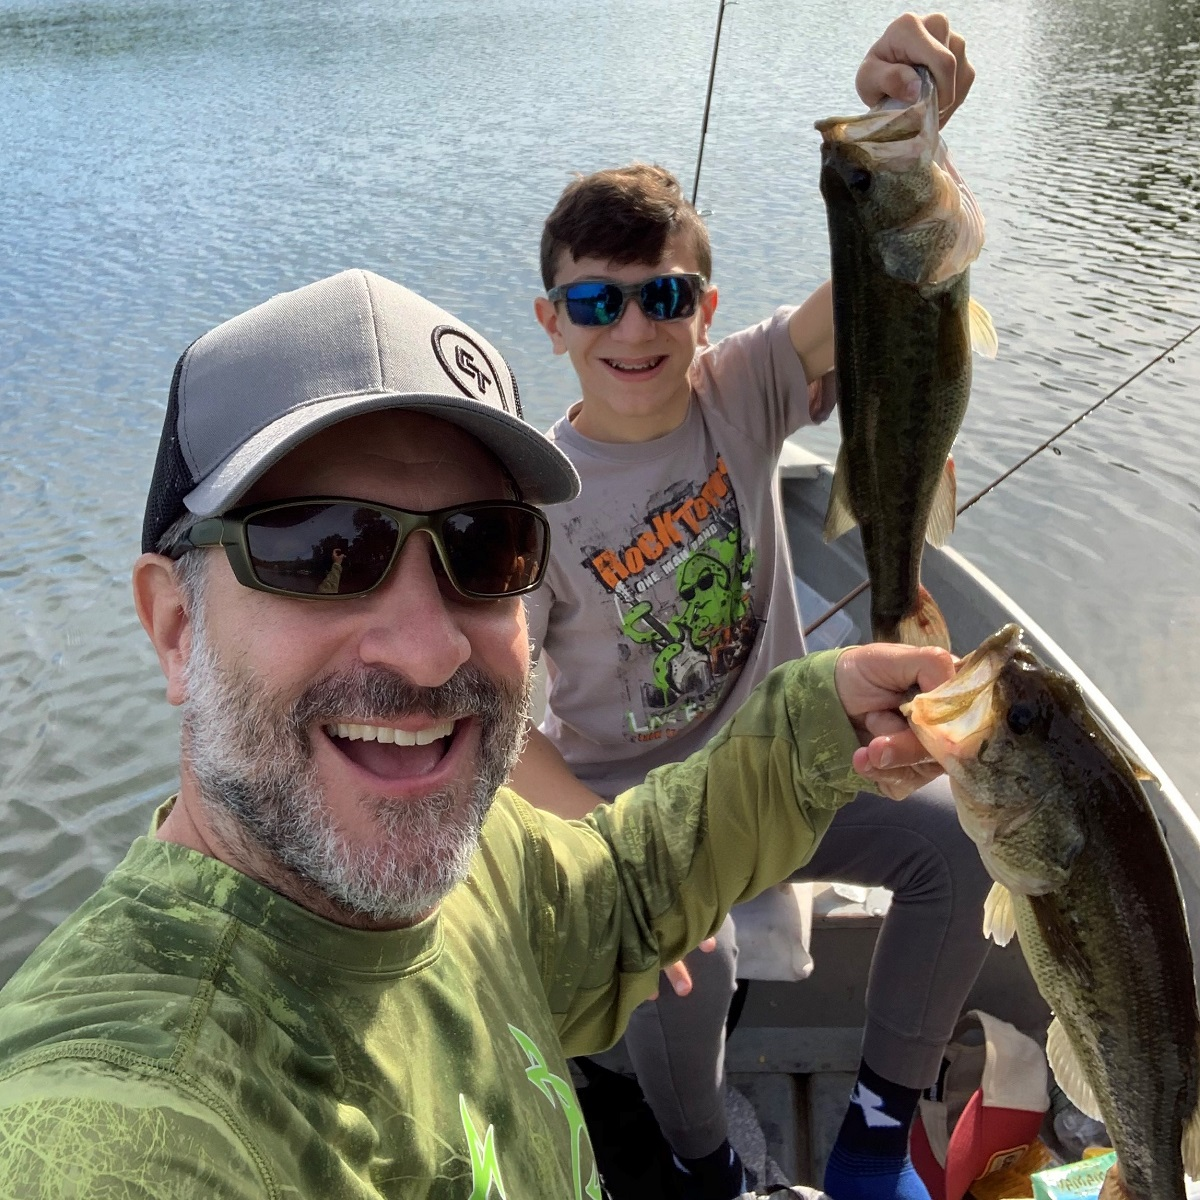 Fishing Guide Photo Contest winners with a largemouth bass double